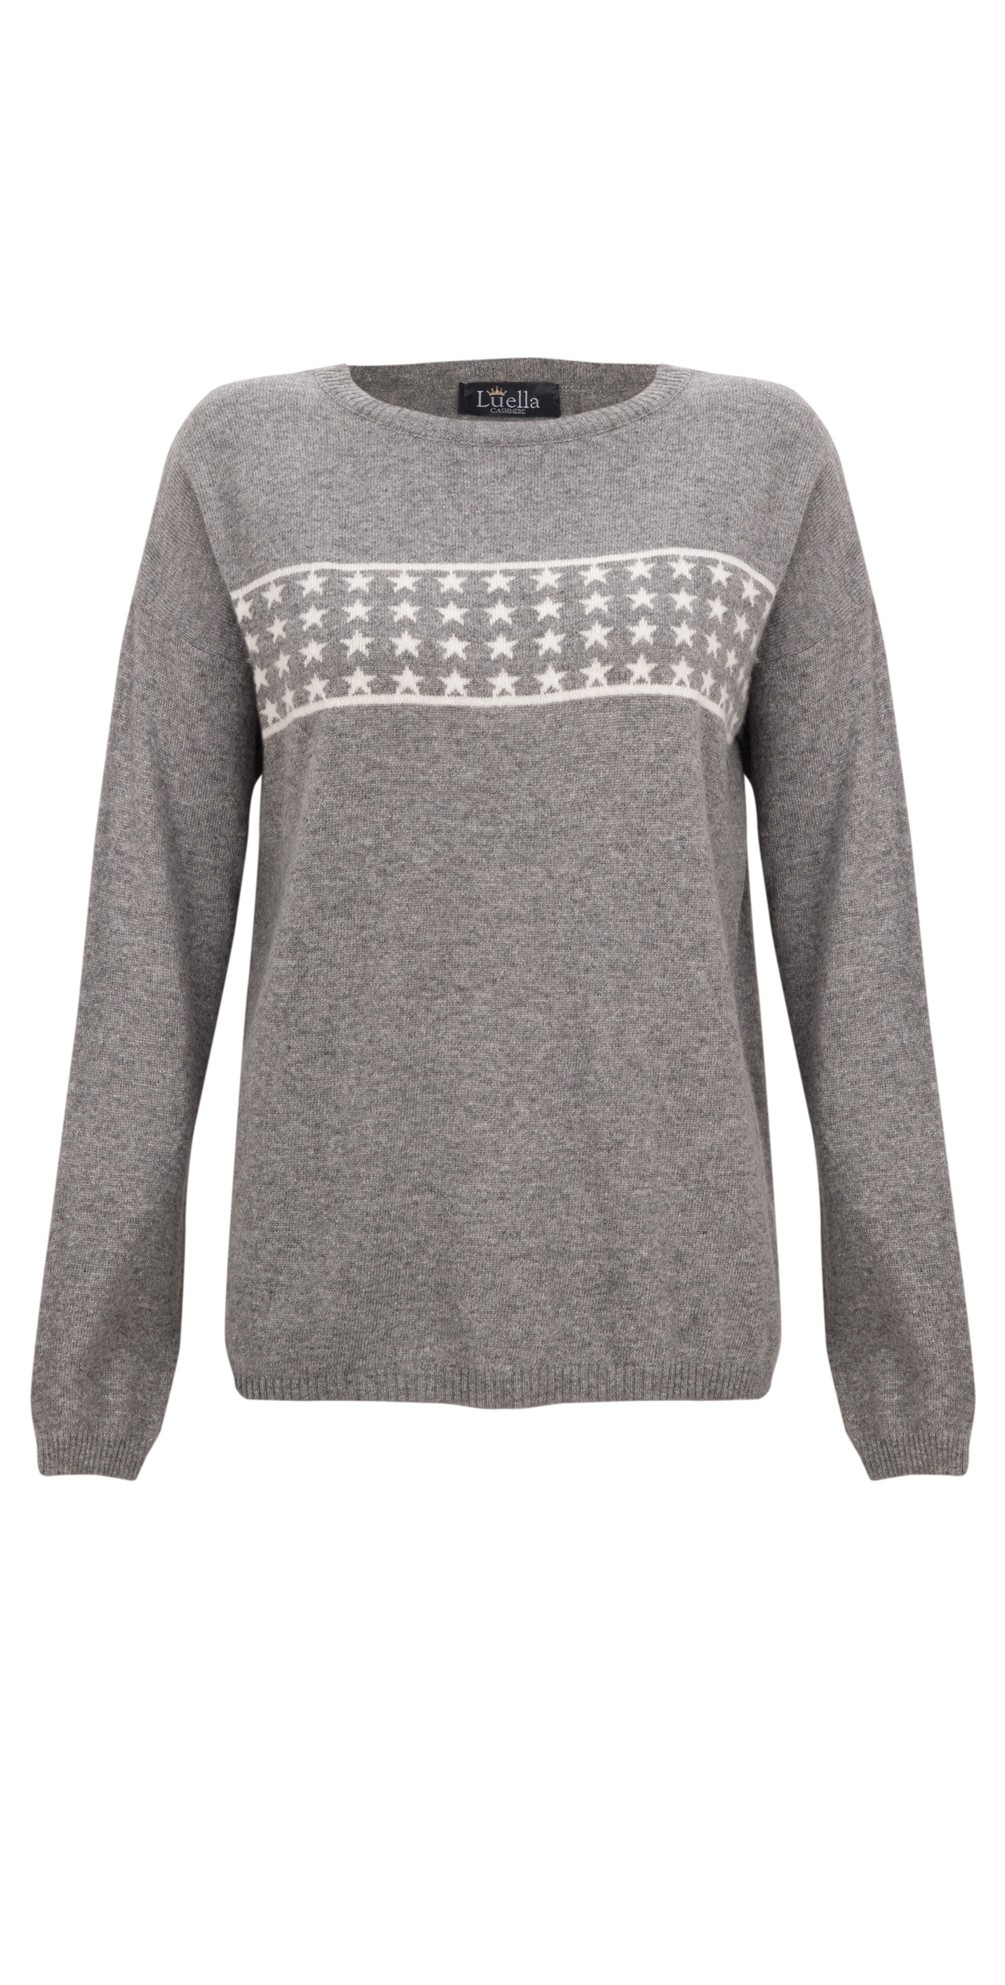 Lizzie Cashmere Blend Jumper with Stars main image